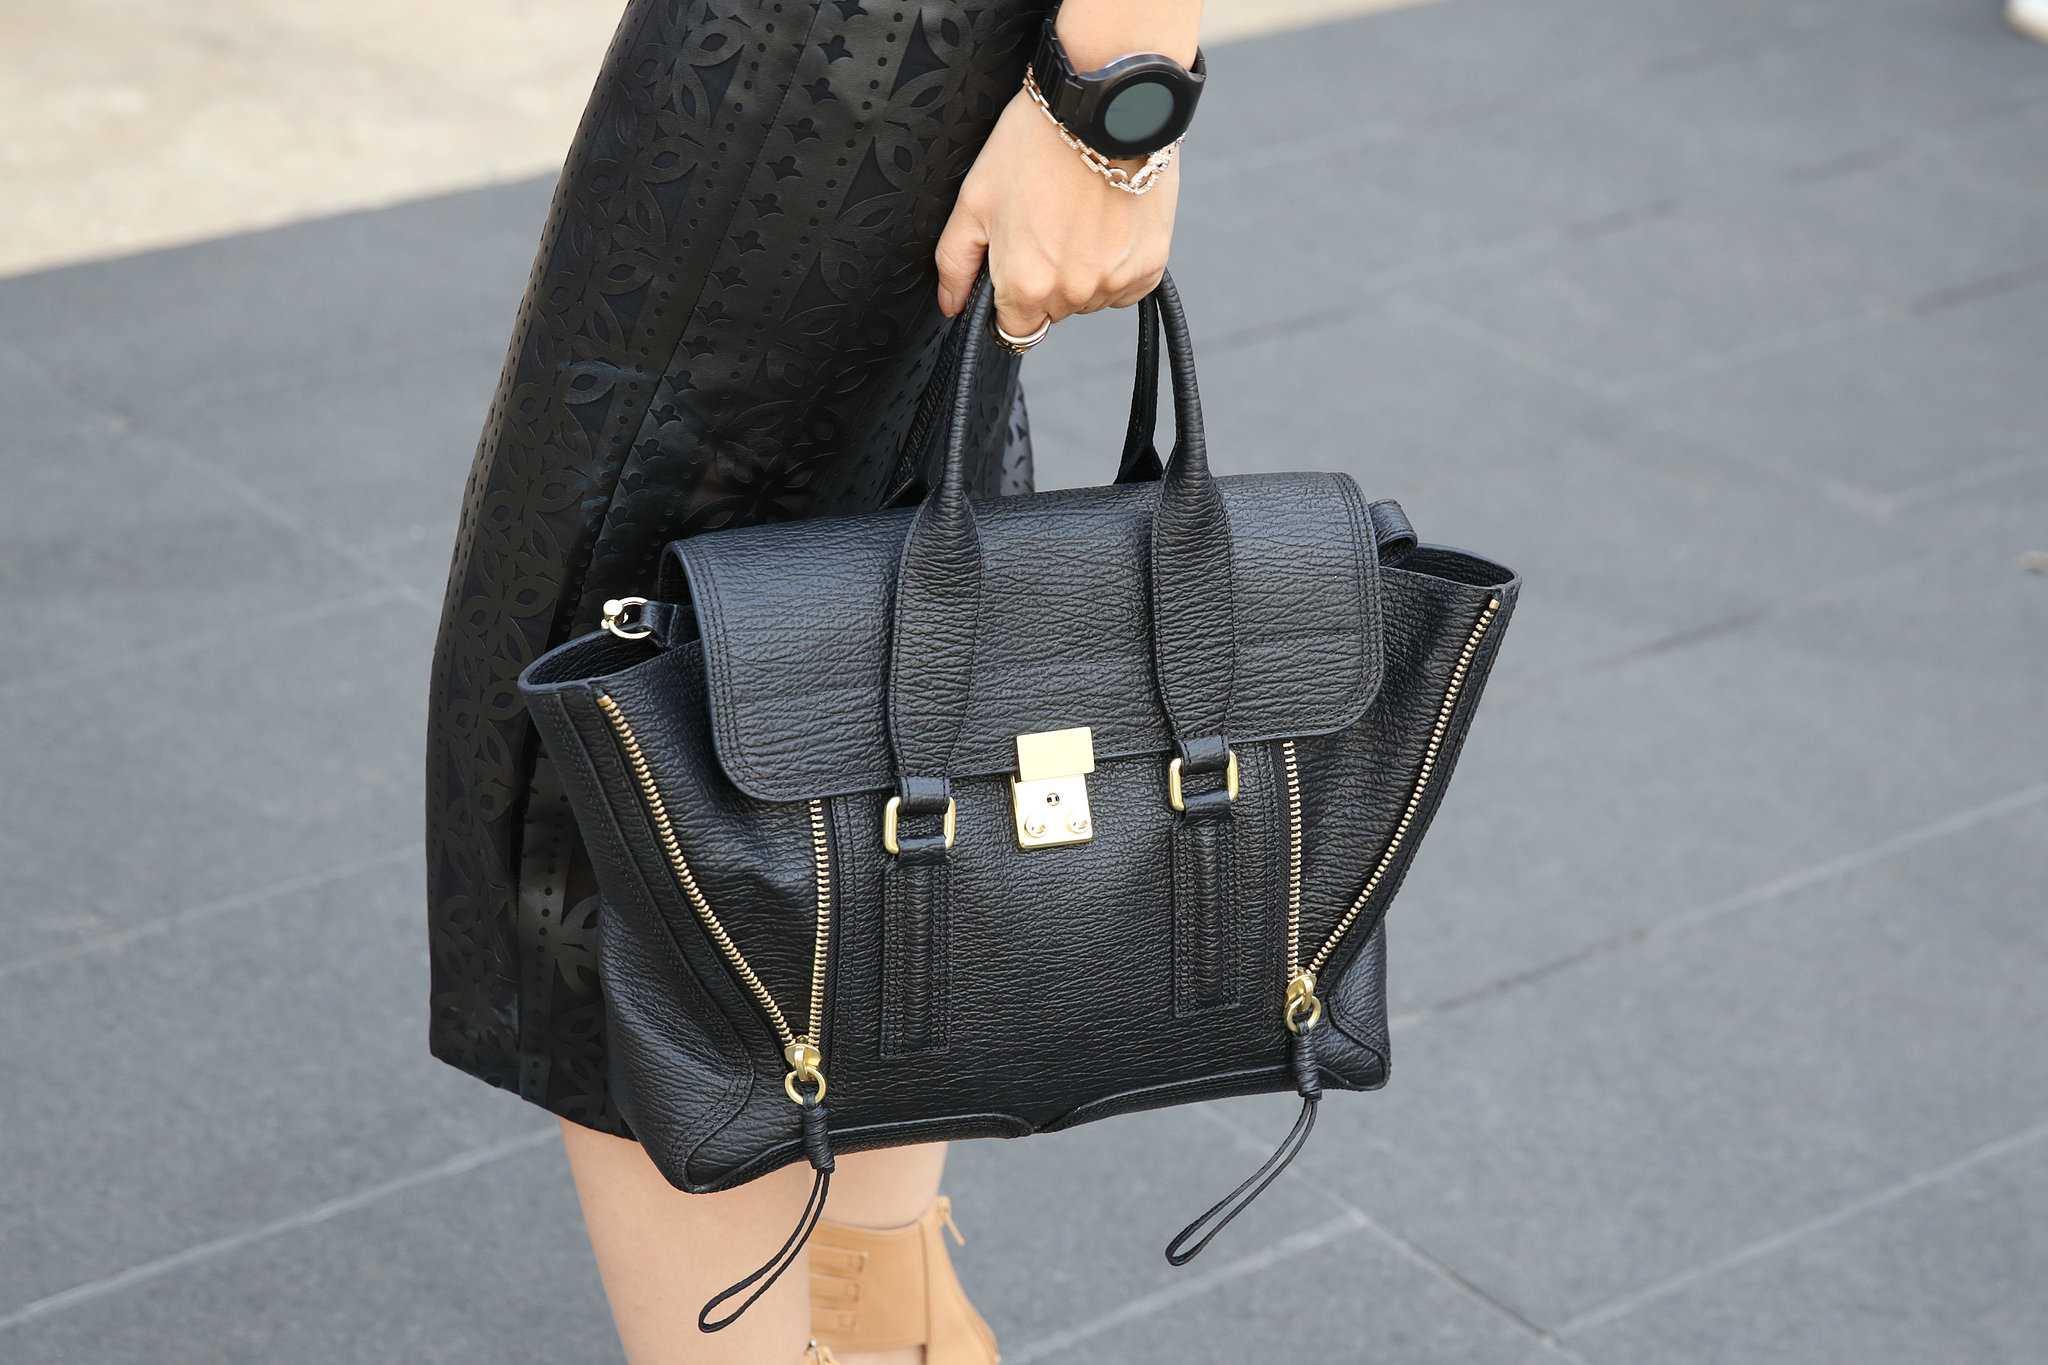 A sleek 3.1 Phillip Lim Pashli spotted outside the tents.